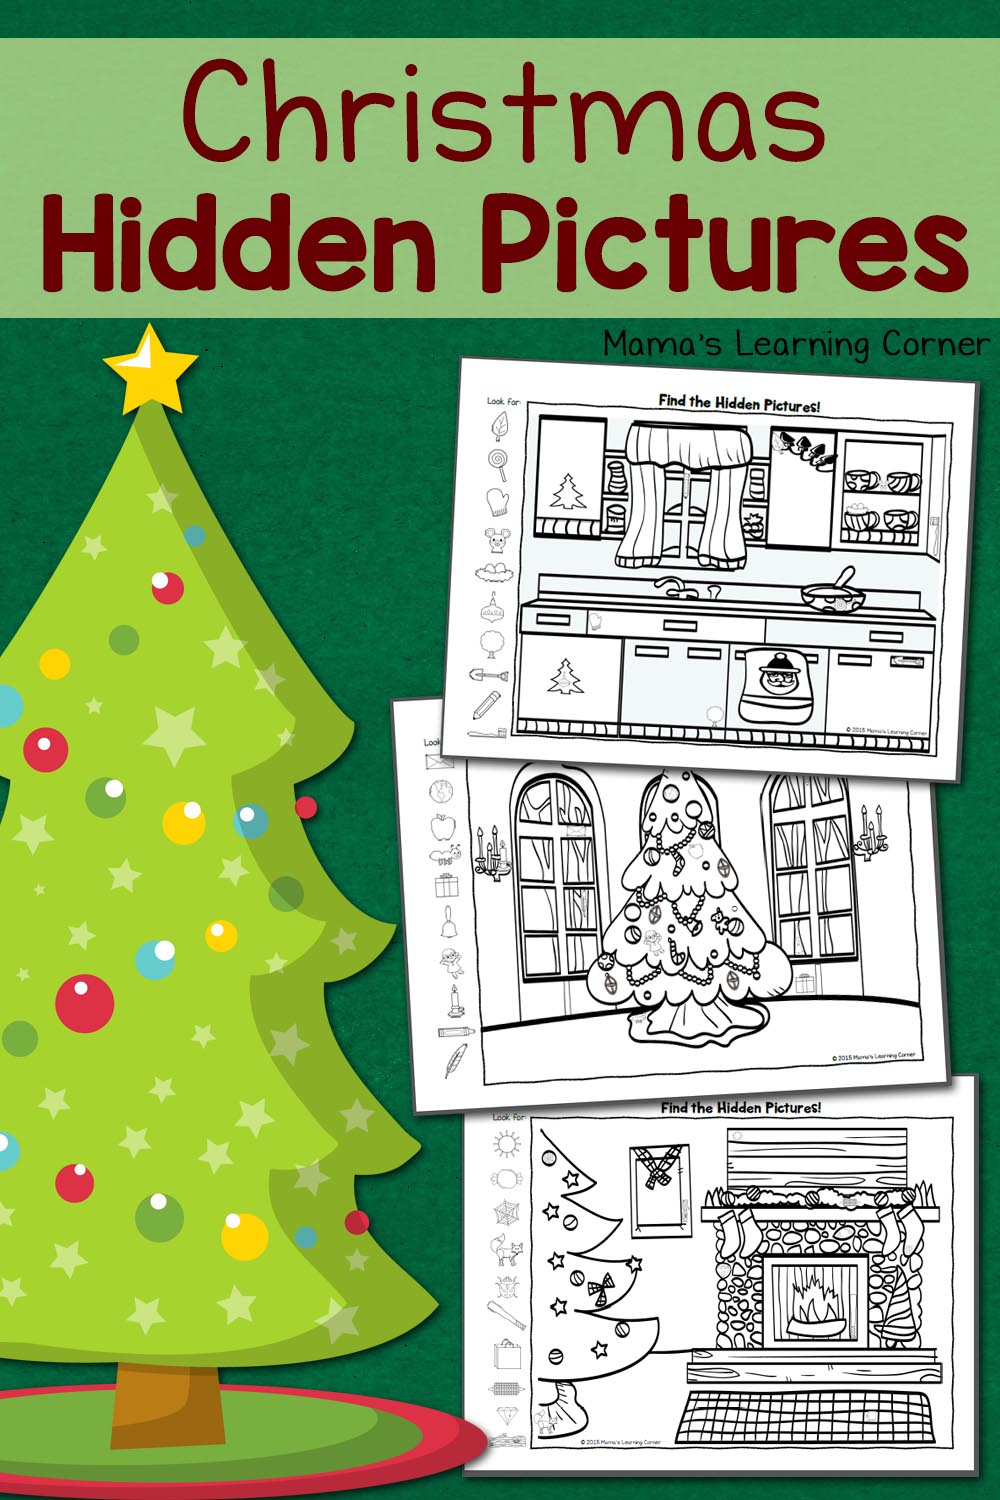 hight resolution of Christmas Hidden Pictures Worksheets - Mamas Learning Corner